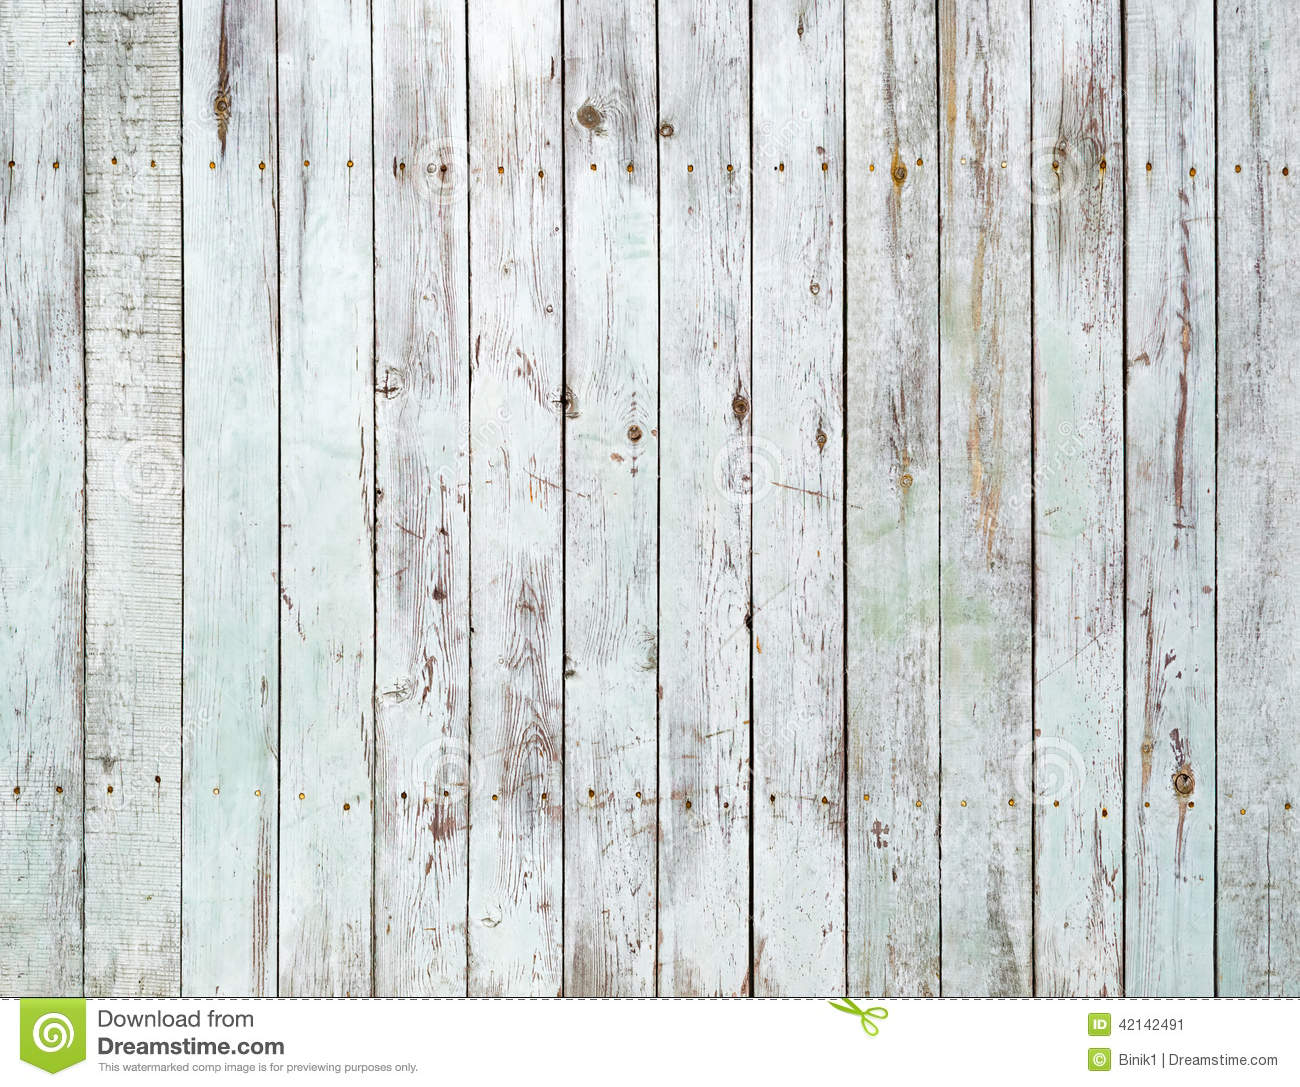 White Wood Wall : Vintage White Wooden Wall Background Stock Photo - Image: 42142491